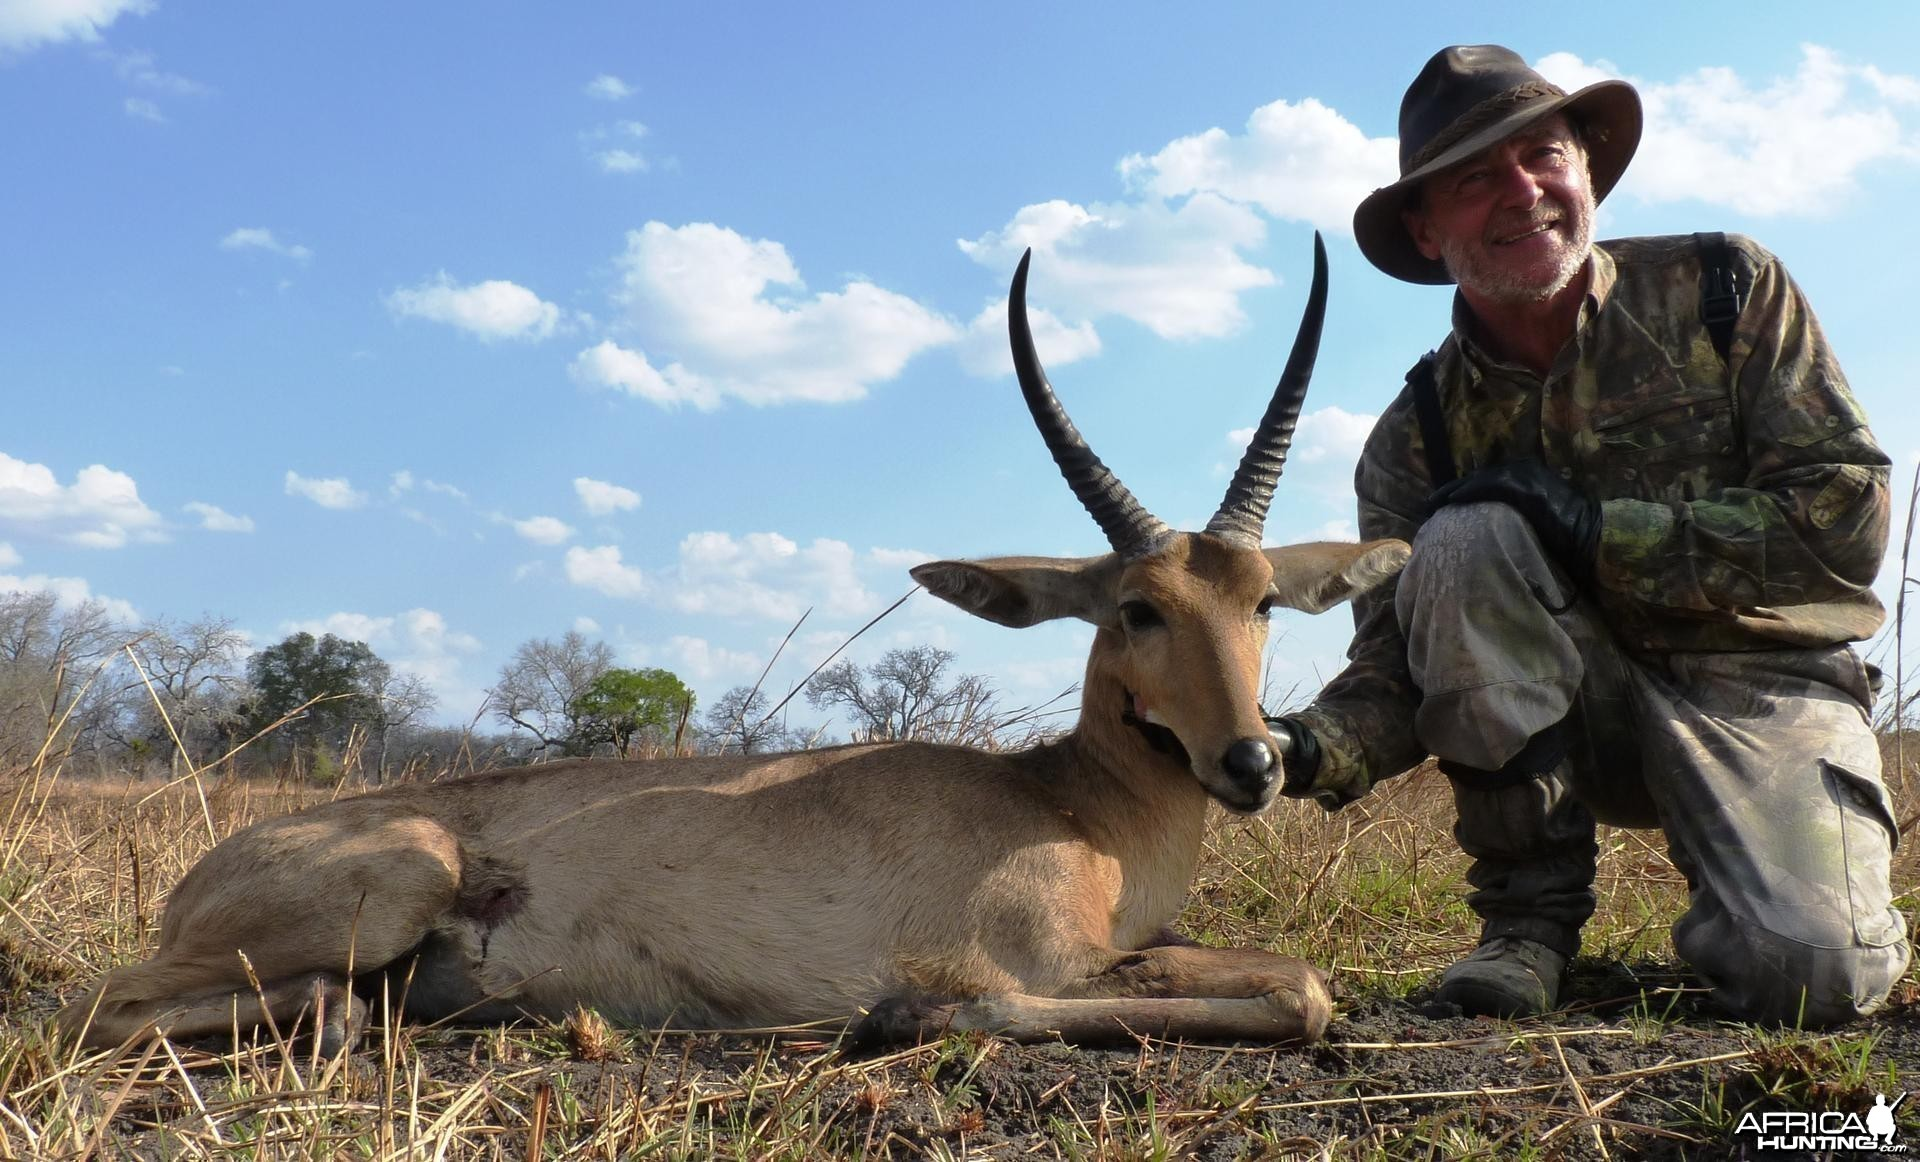 Cob des Roseaux hunted in the Selous, Tanzania